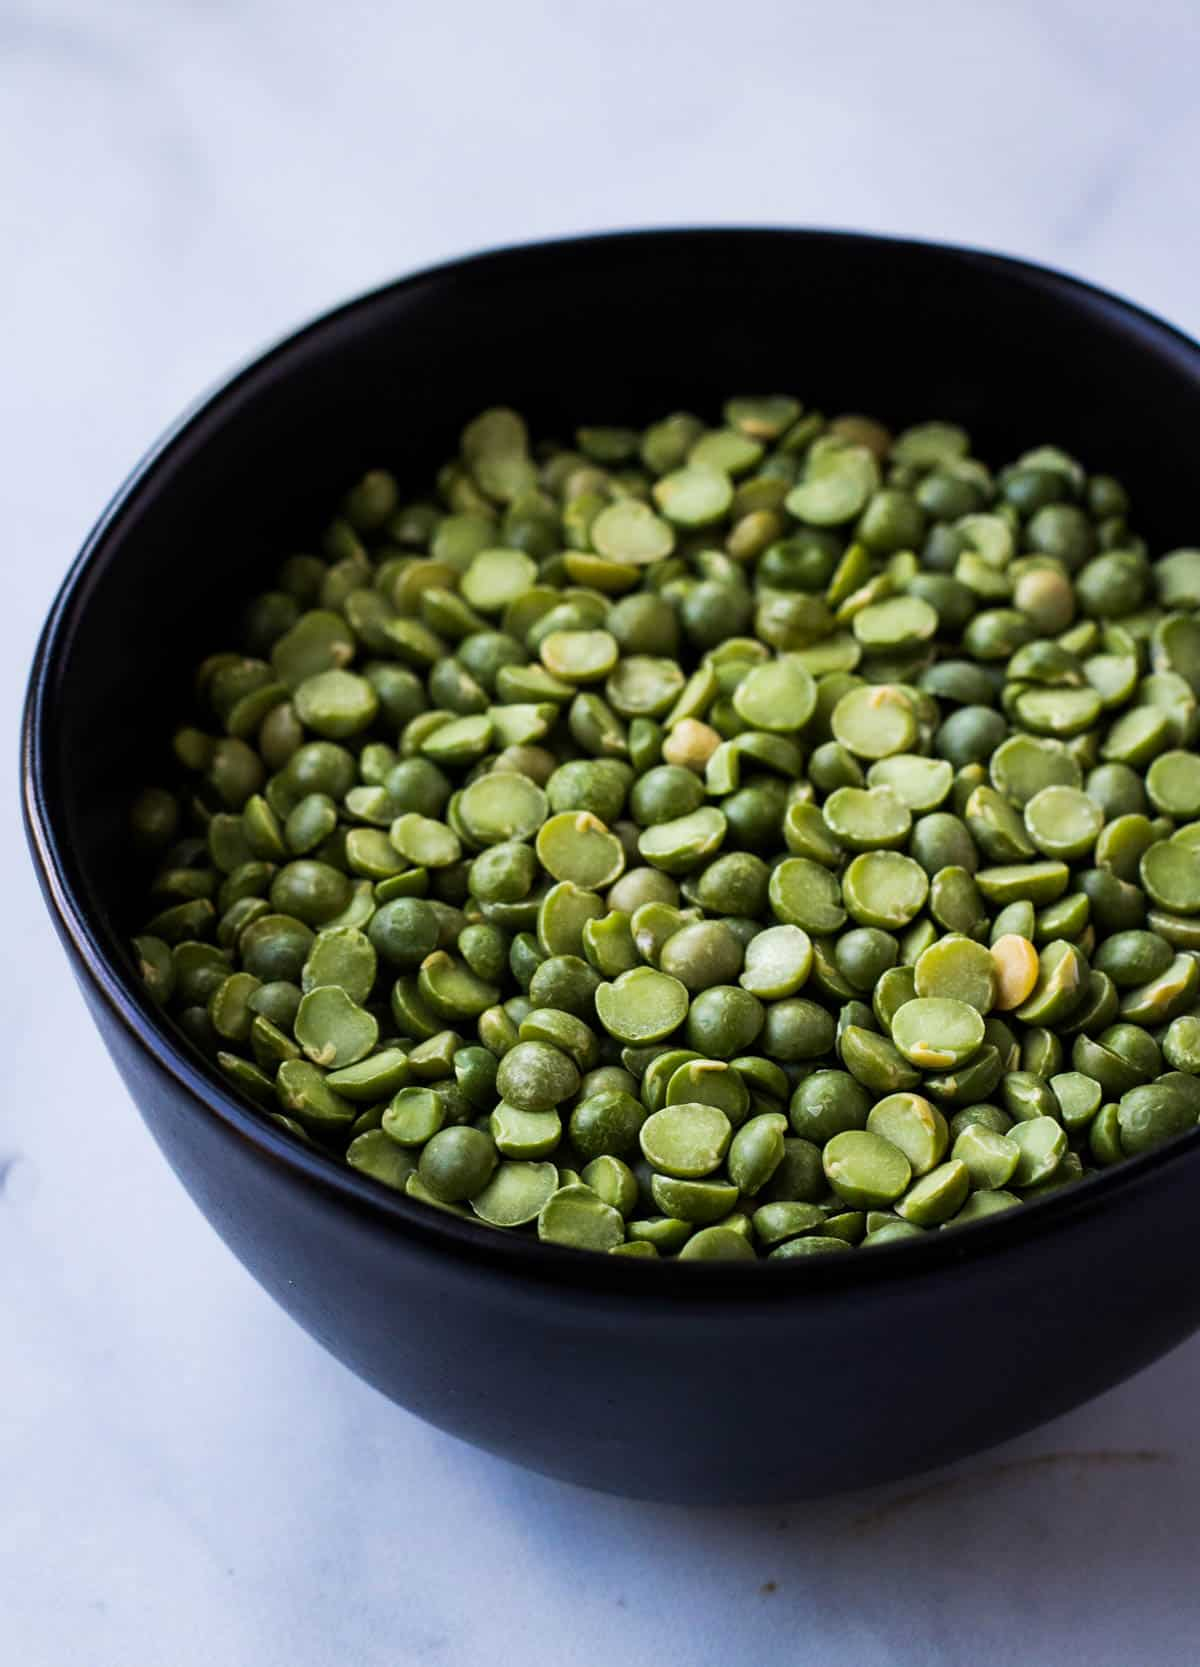 a bowl of dried split peas